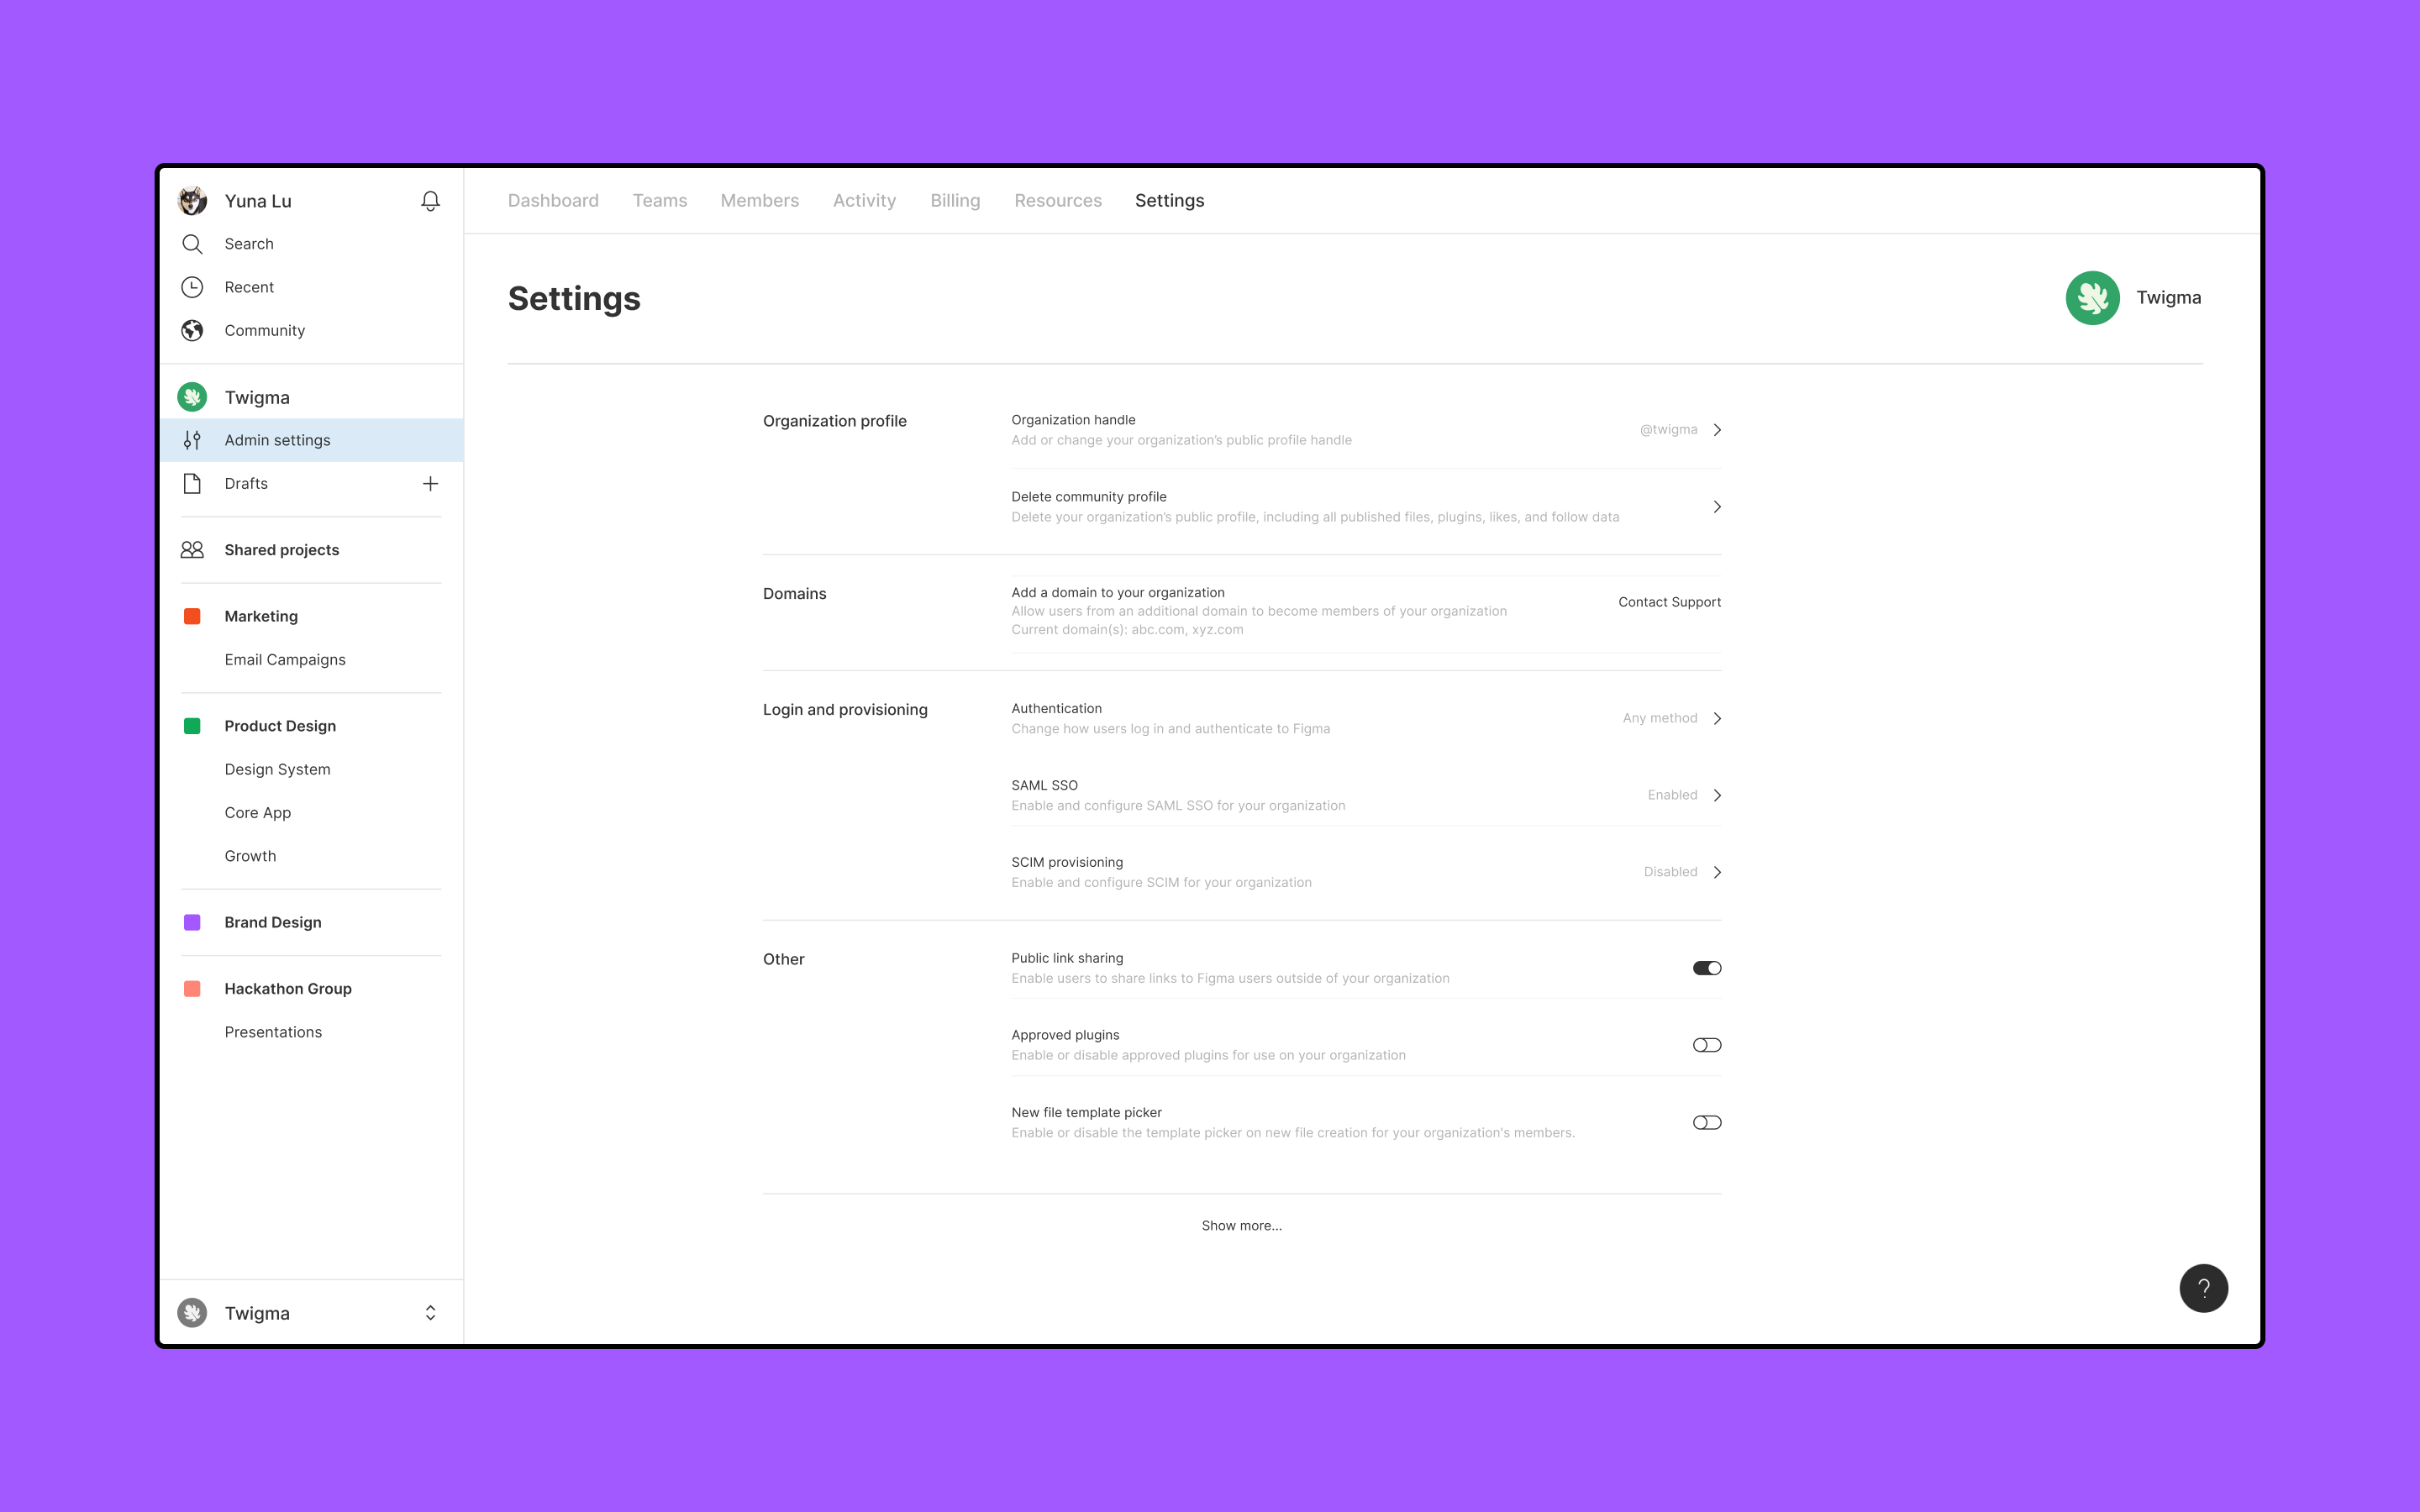 The Settings tab of the organization's Admin settings with settings for Figma Community, domains, login, resources and more